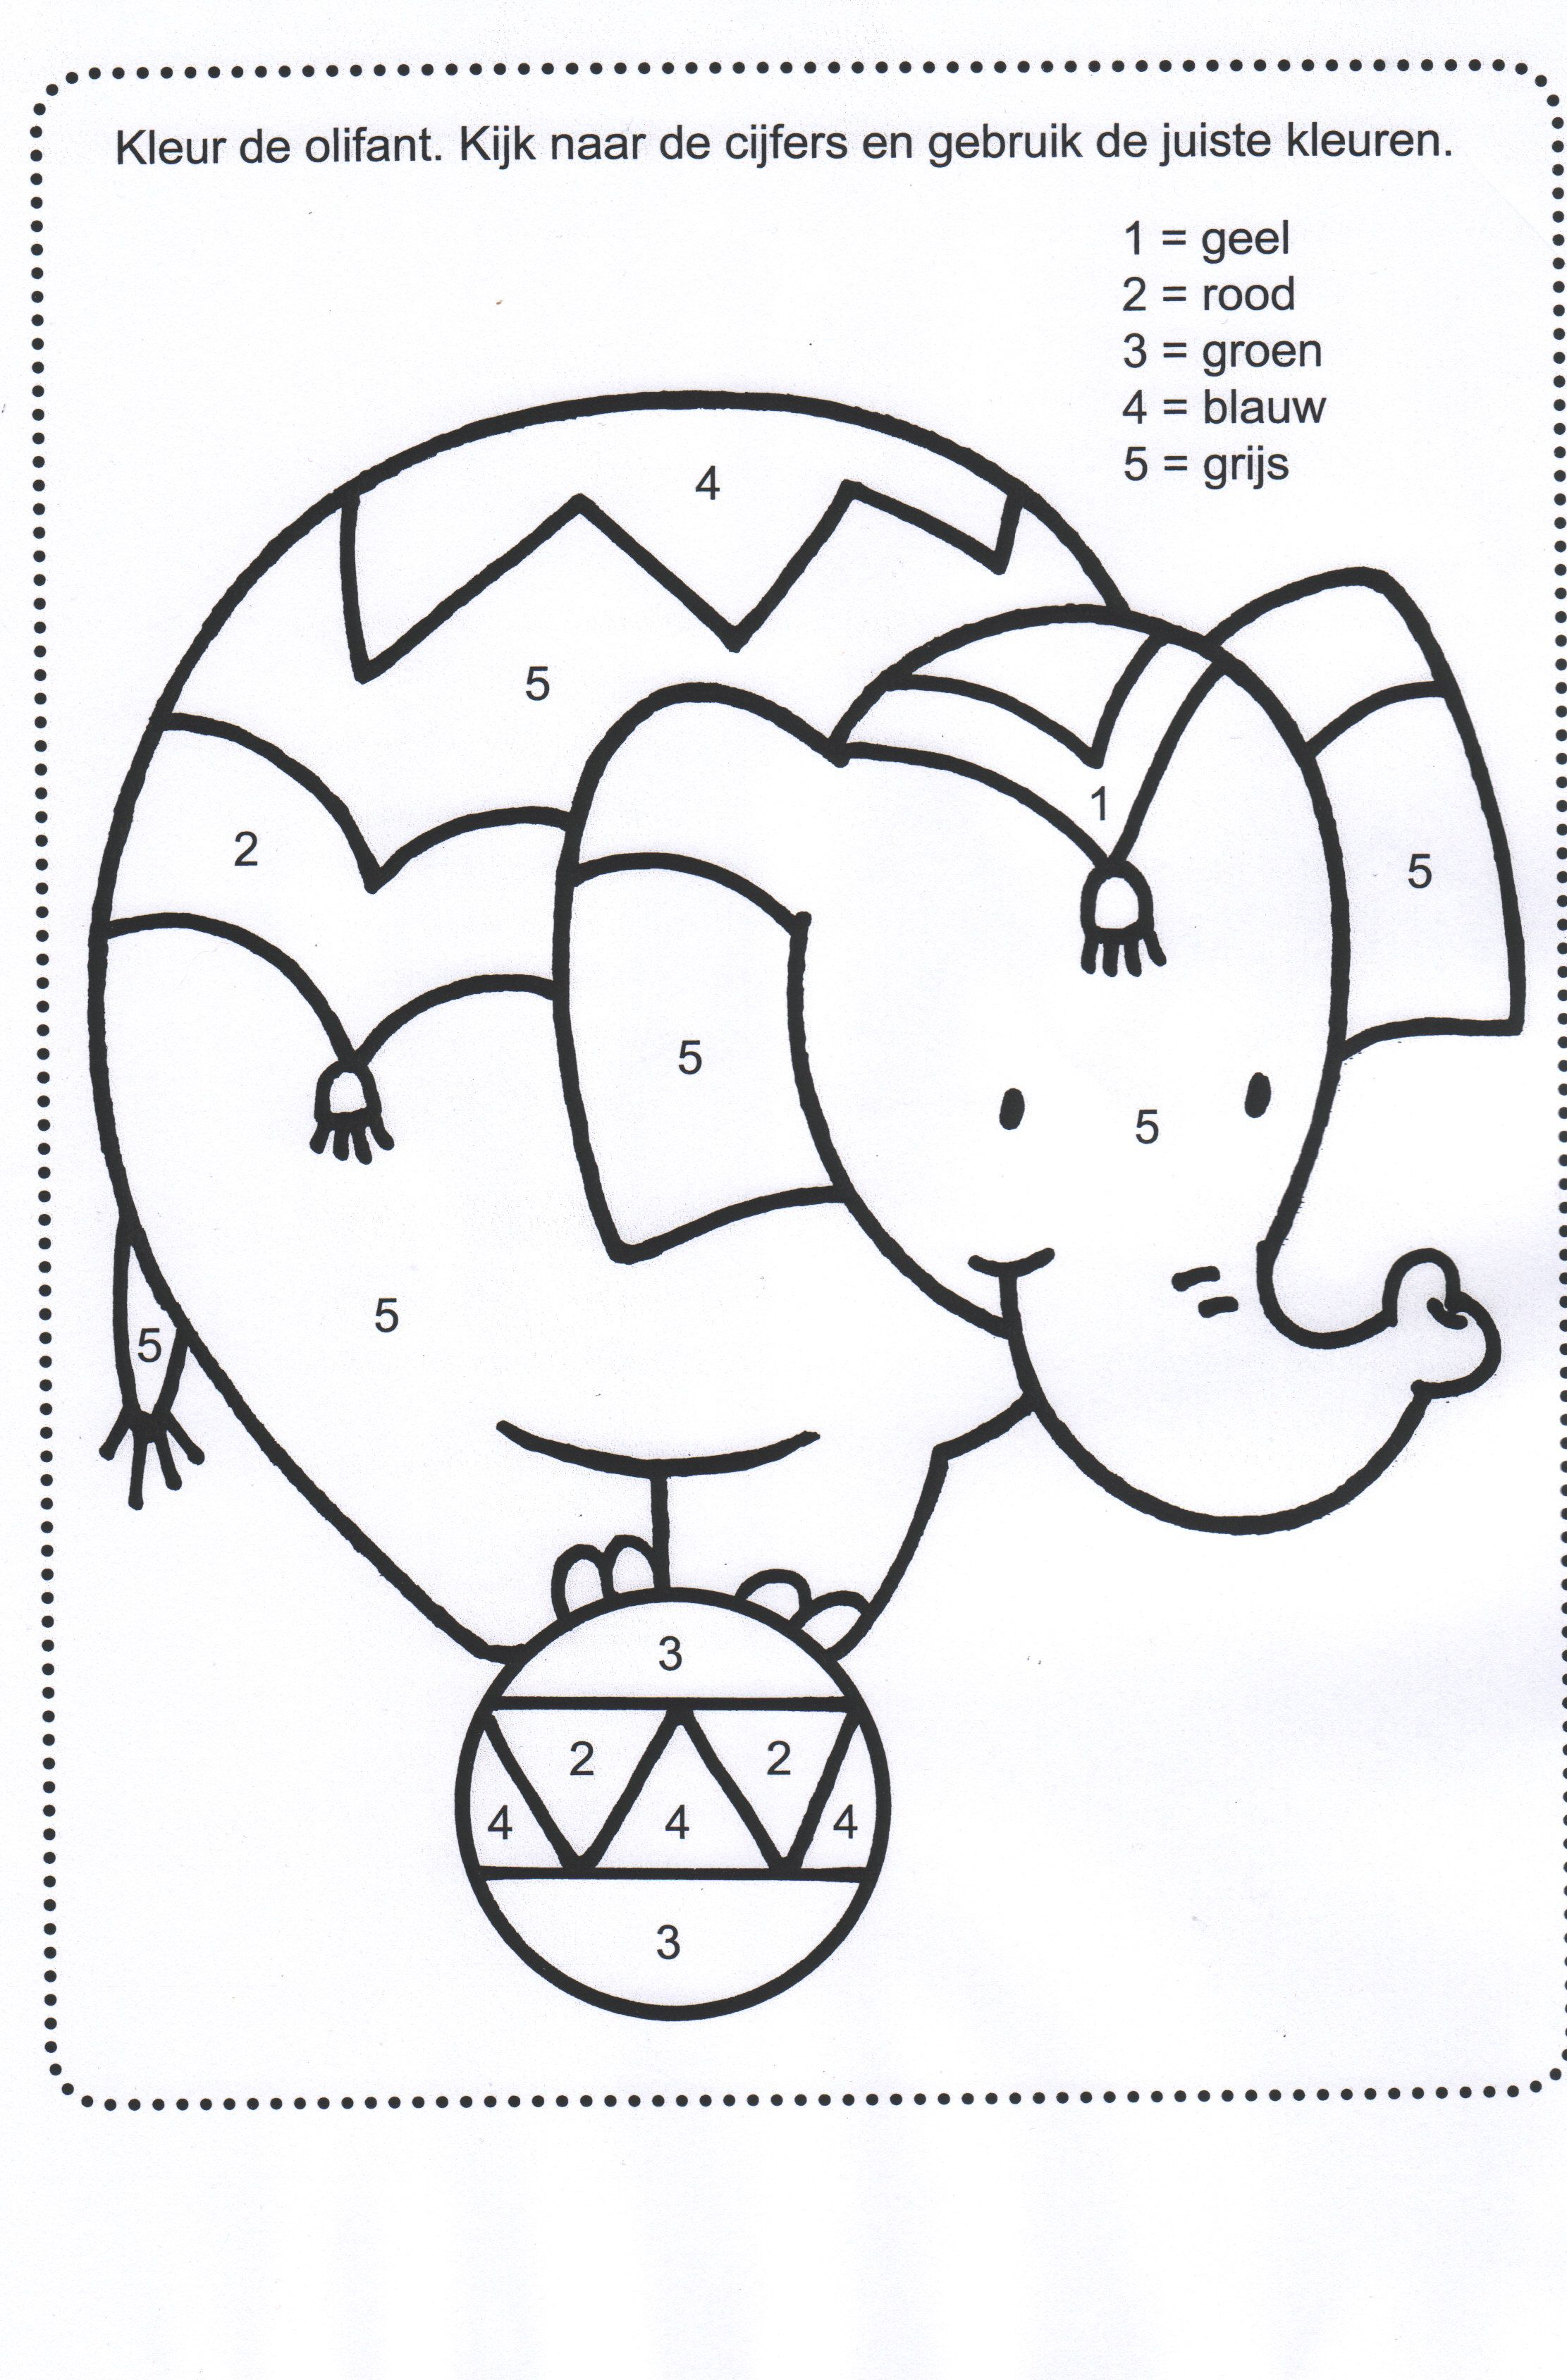 circus theme coloring pages - photo#42